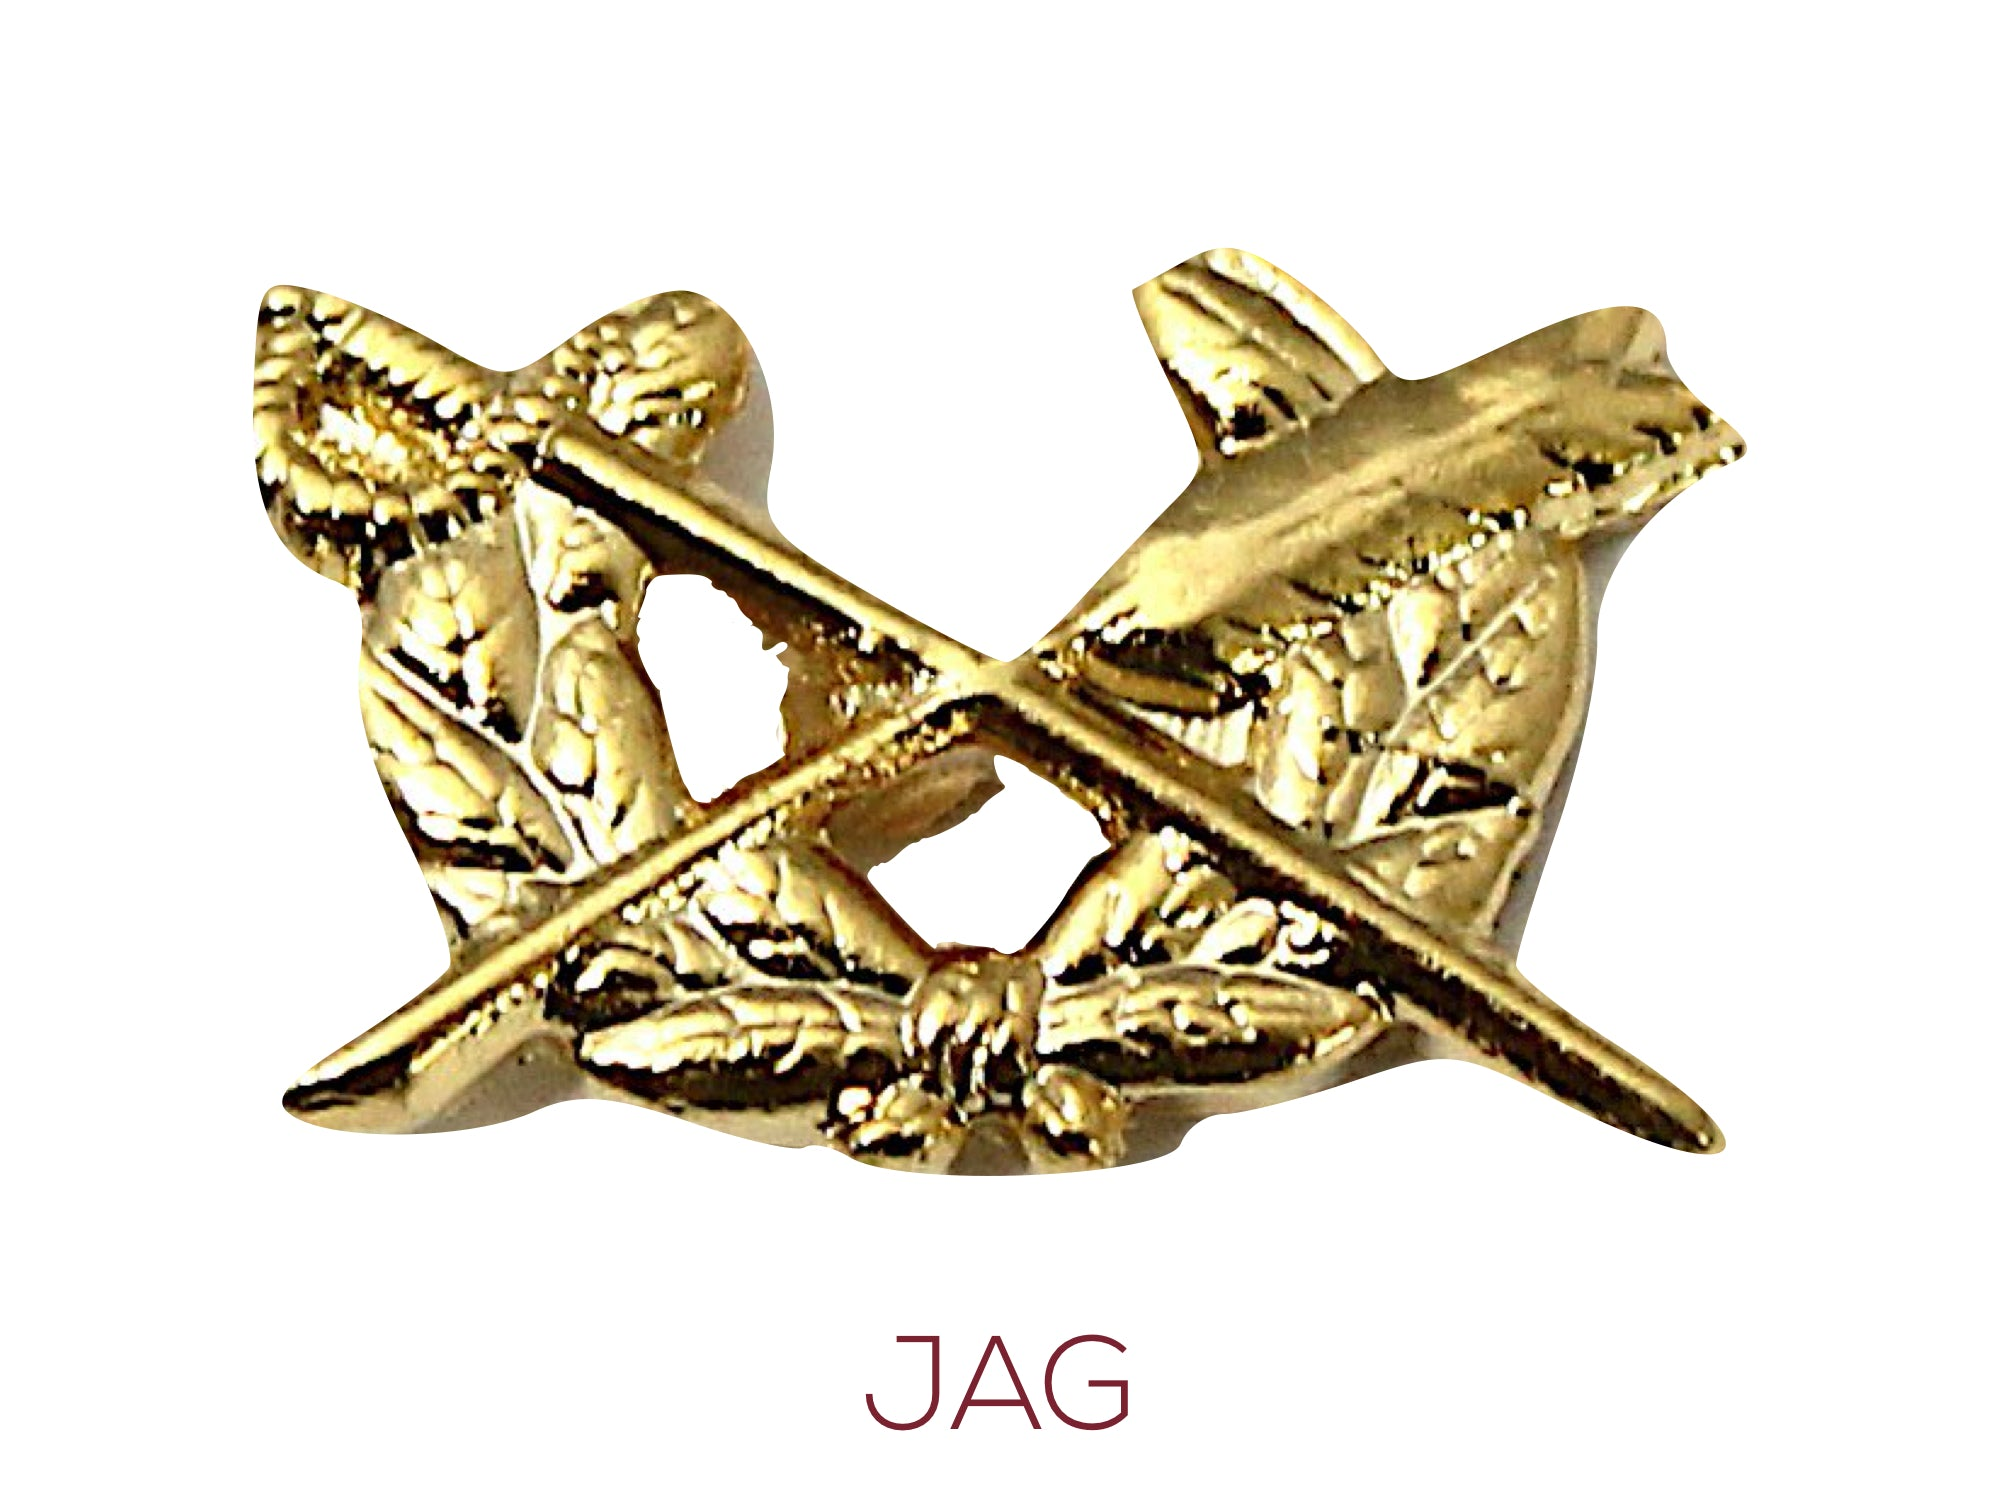 Judge Advocate General (JAG) Men's Collection